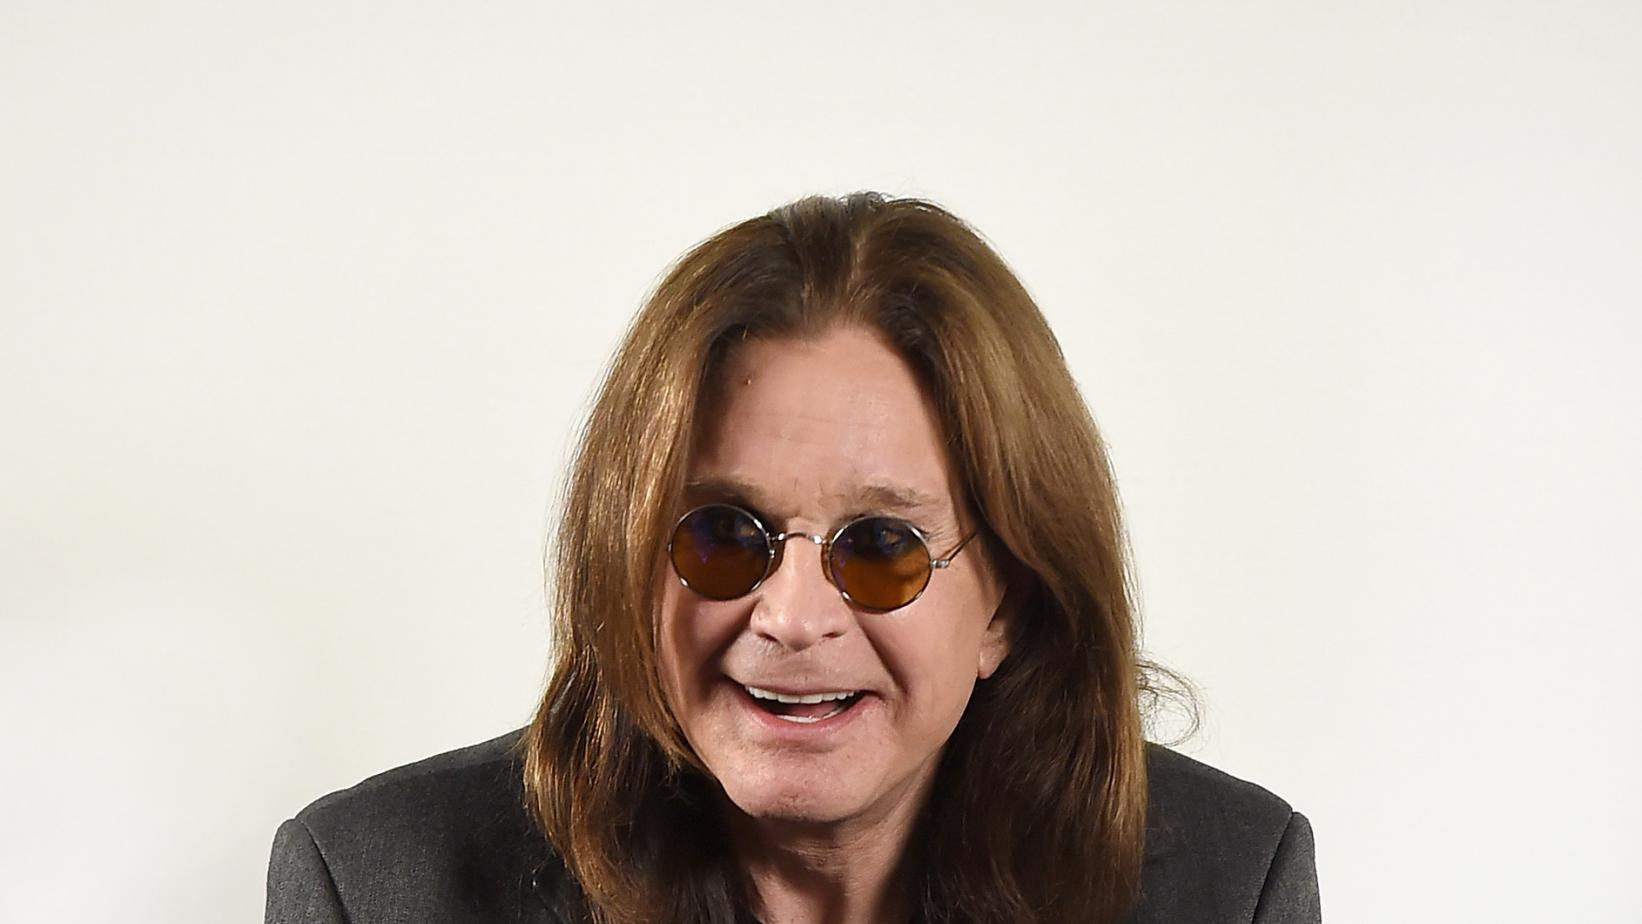 Ozzy Osbourne photographed in 2018